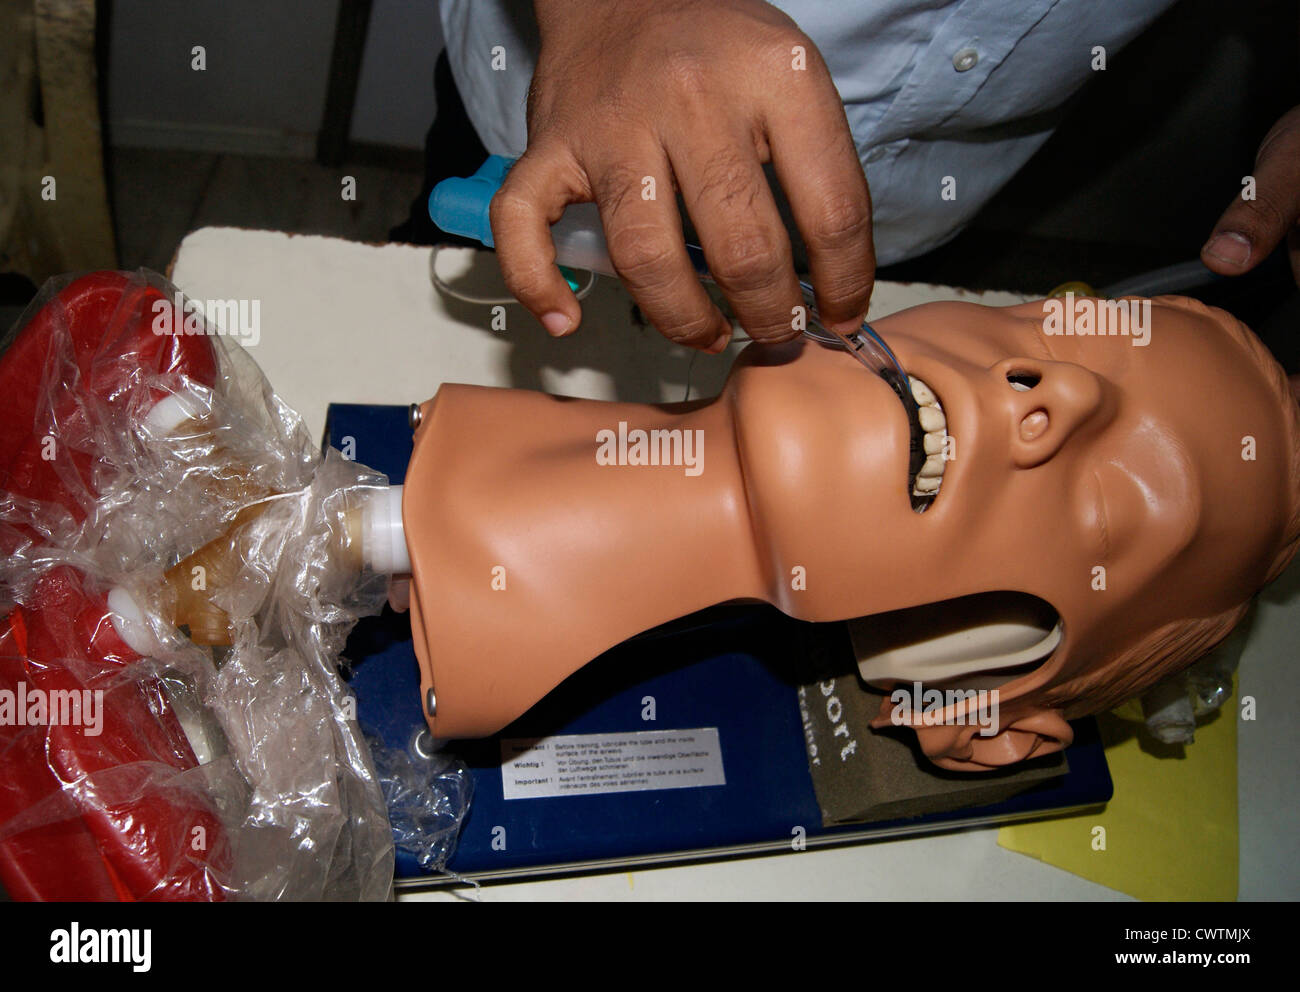 Doctor Explain how to give Artificial Respiration using Medical Devices to Dummy Patient model in Medical Exhibition - Stock Image